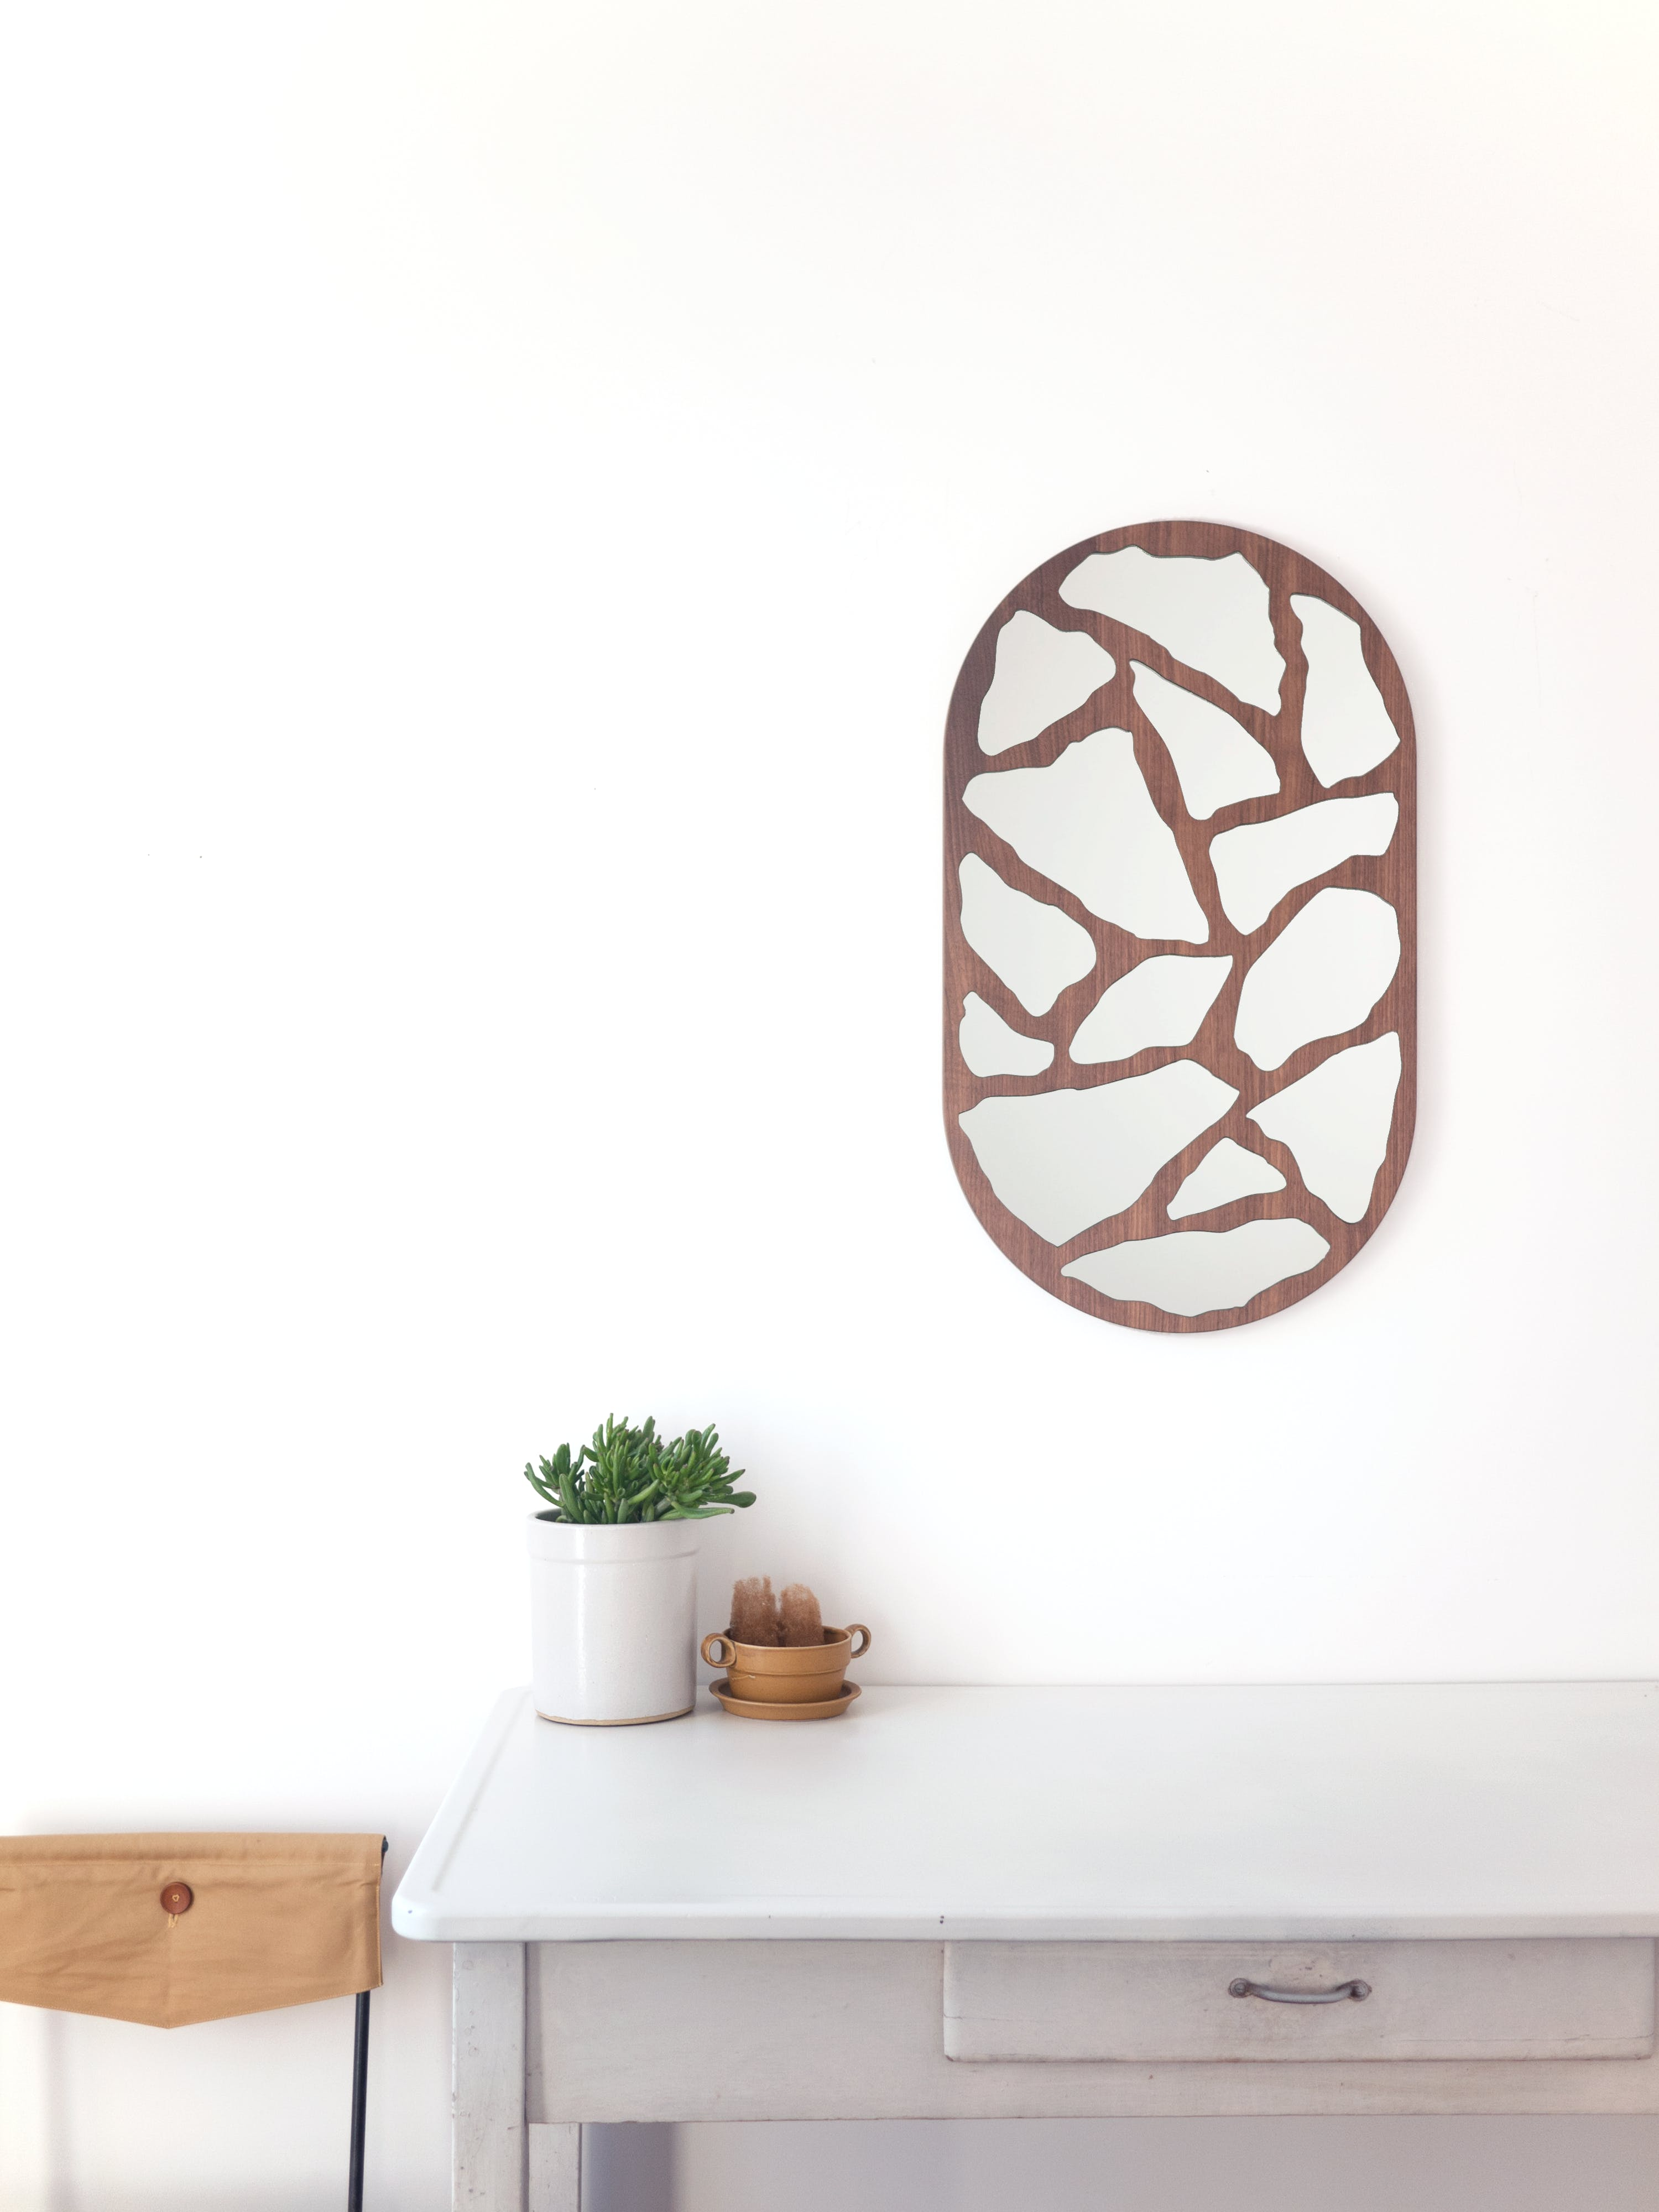 02 Wood 3000 Mirror By Trueing Image By Trueing